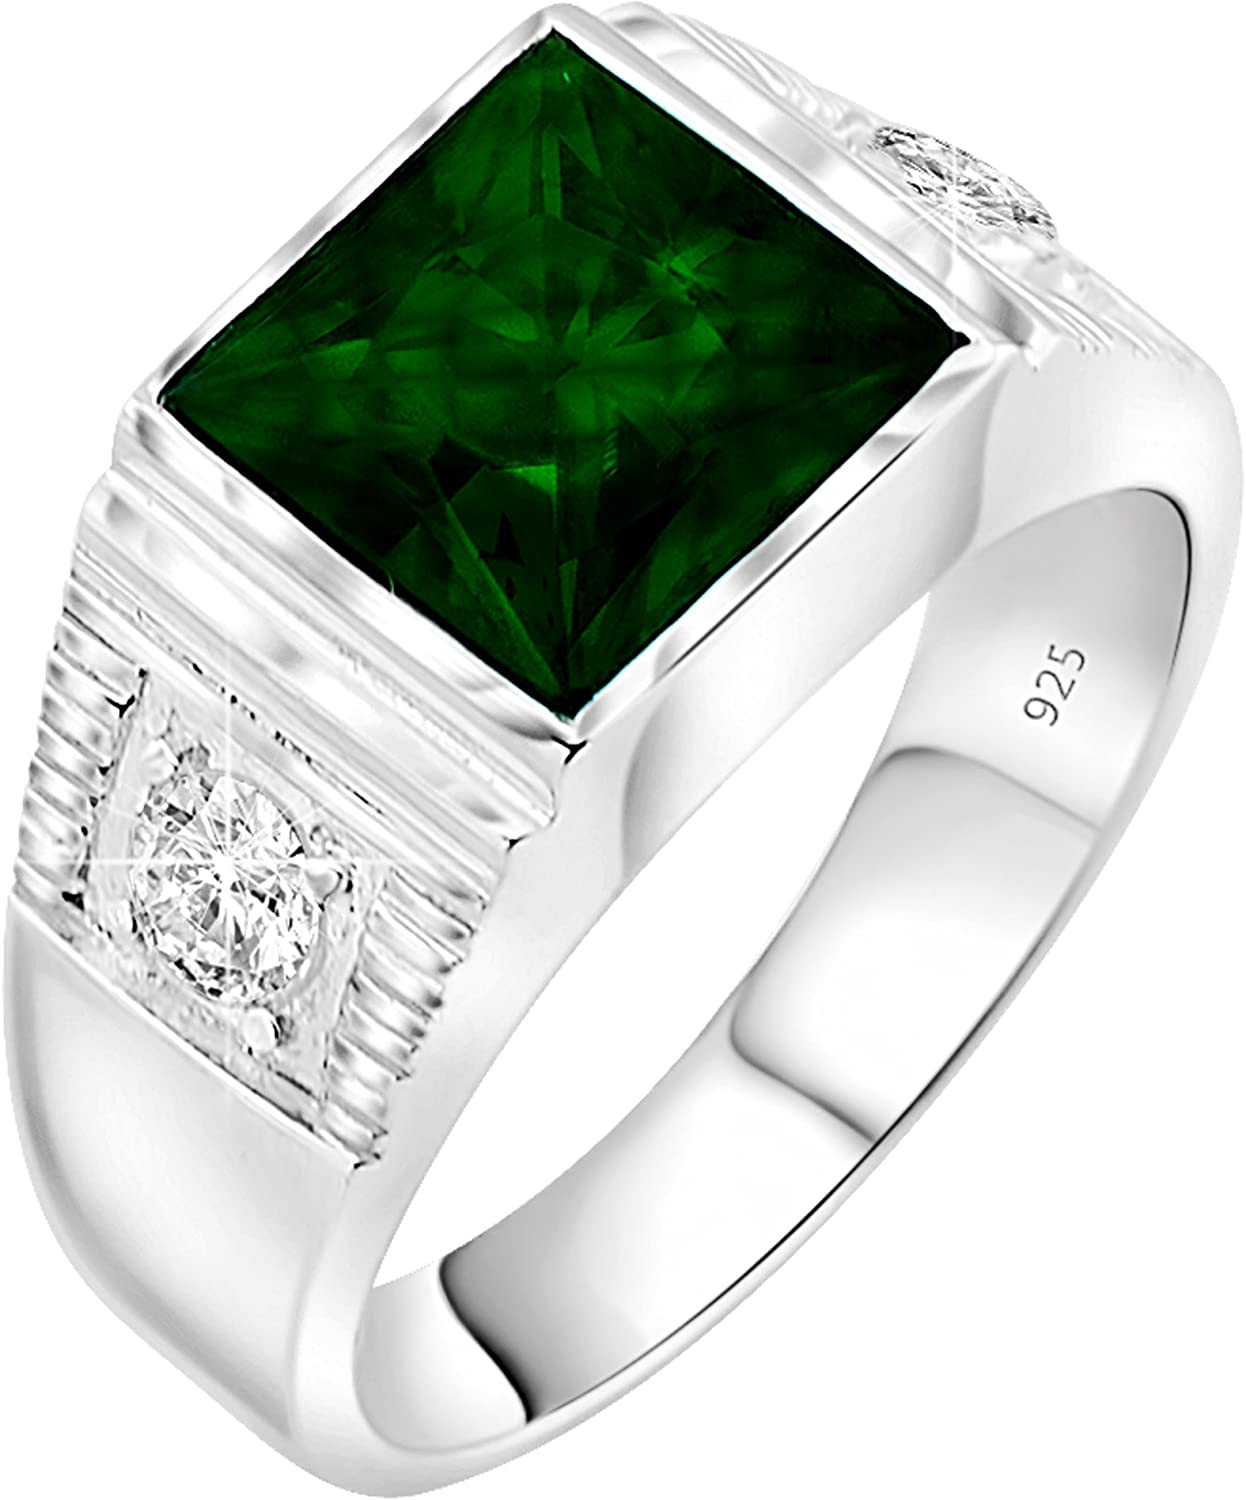 [2-5 Days Delivery] Men's Sterling Silver .925 Princess-Cut Ring Featuring a Synthetic Green Emerald Stone Surrounded by 2 Fancy White Cubic Zirconia (CZ) Stones